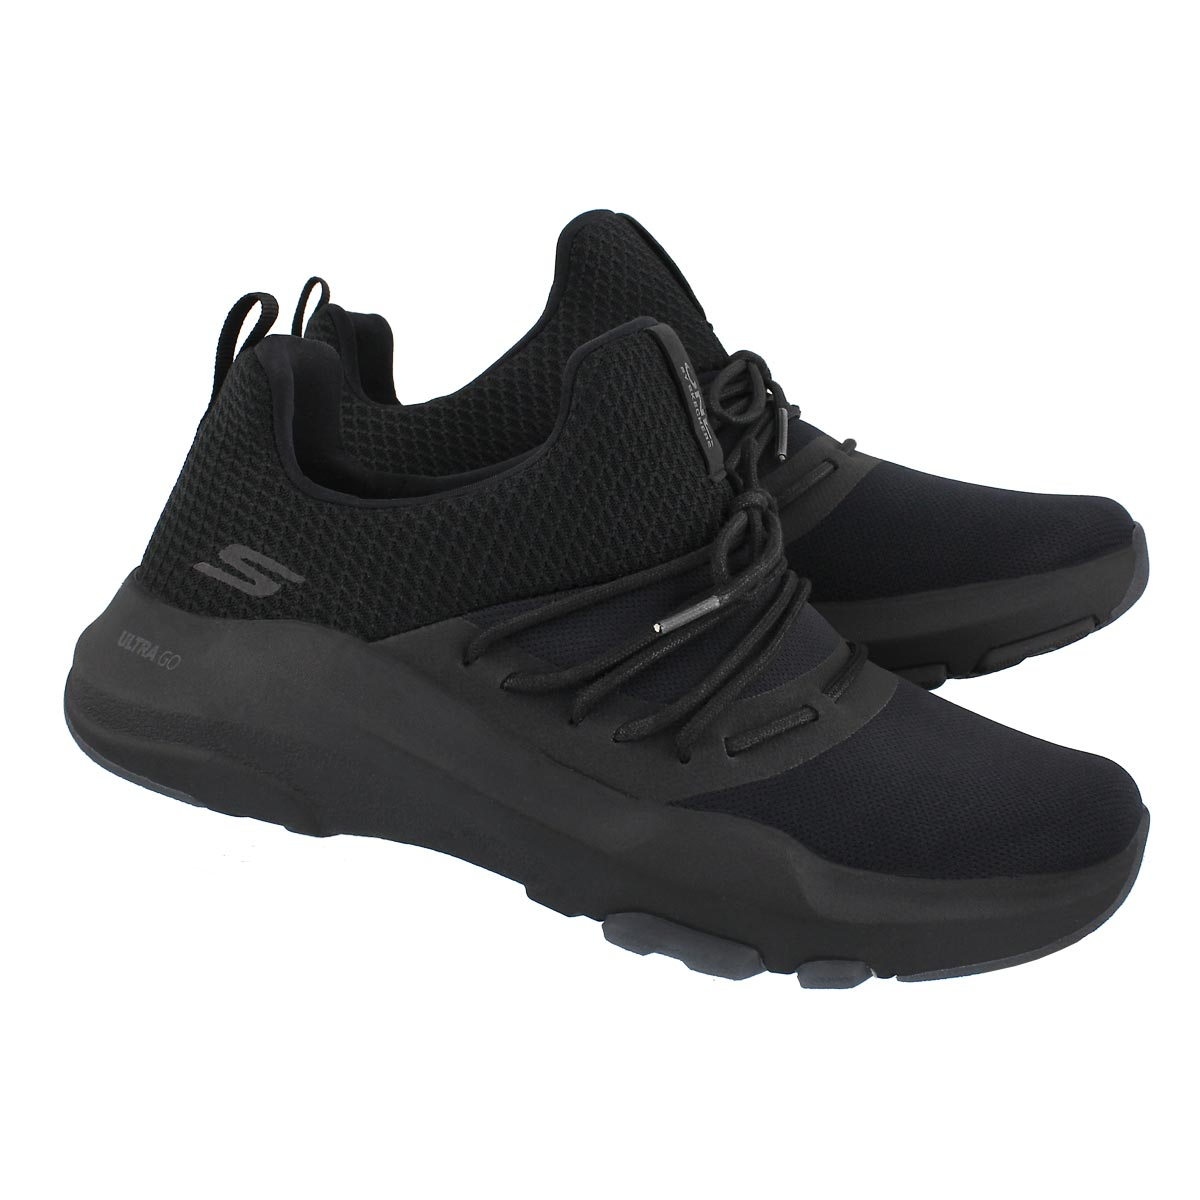 Mns ONE Element Ultra blk snkr